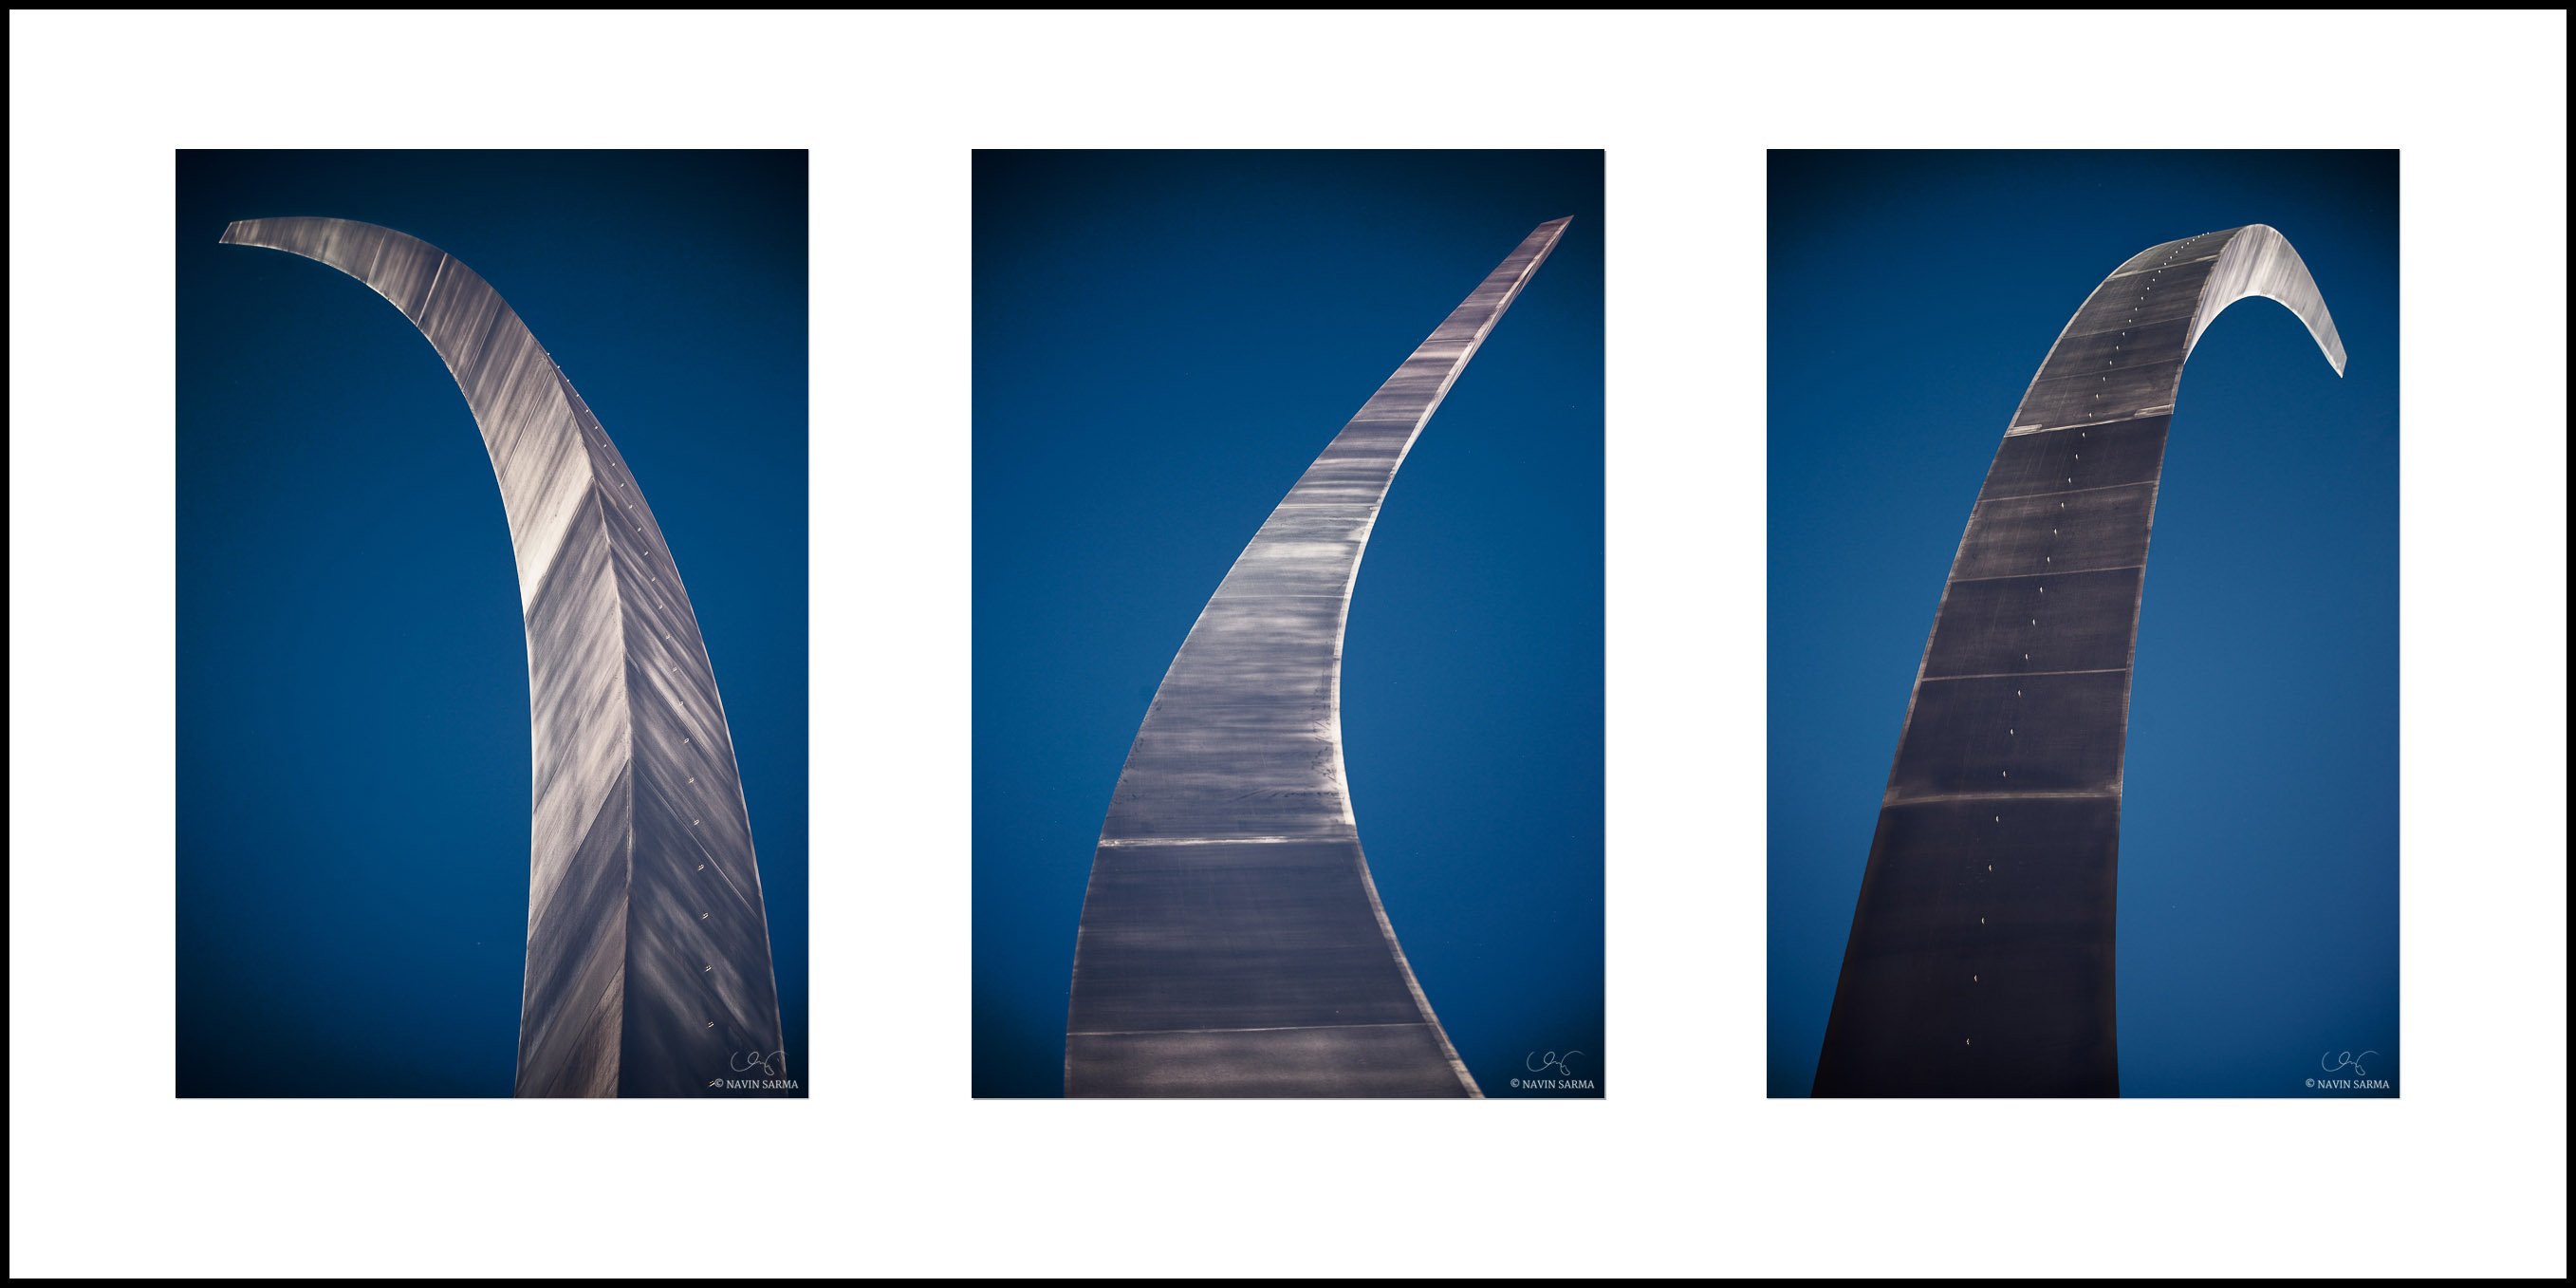 A closeup of the 3 spires that comprise the Air Force Memorial and Missing Man Formation